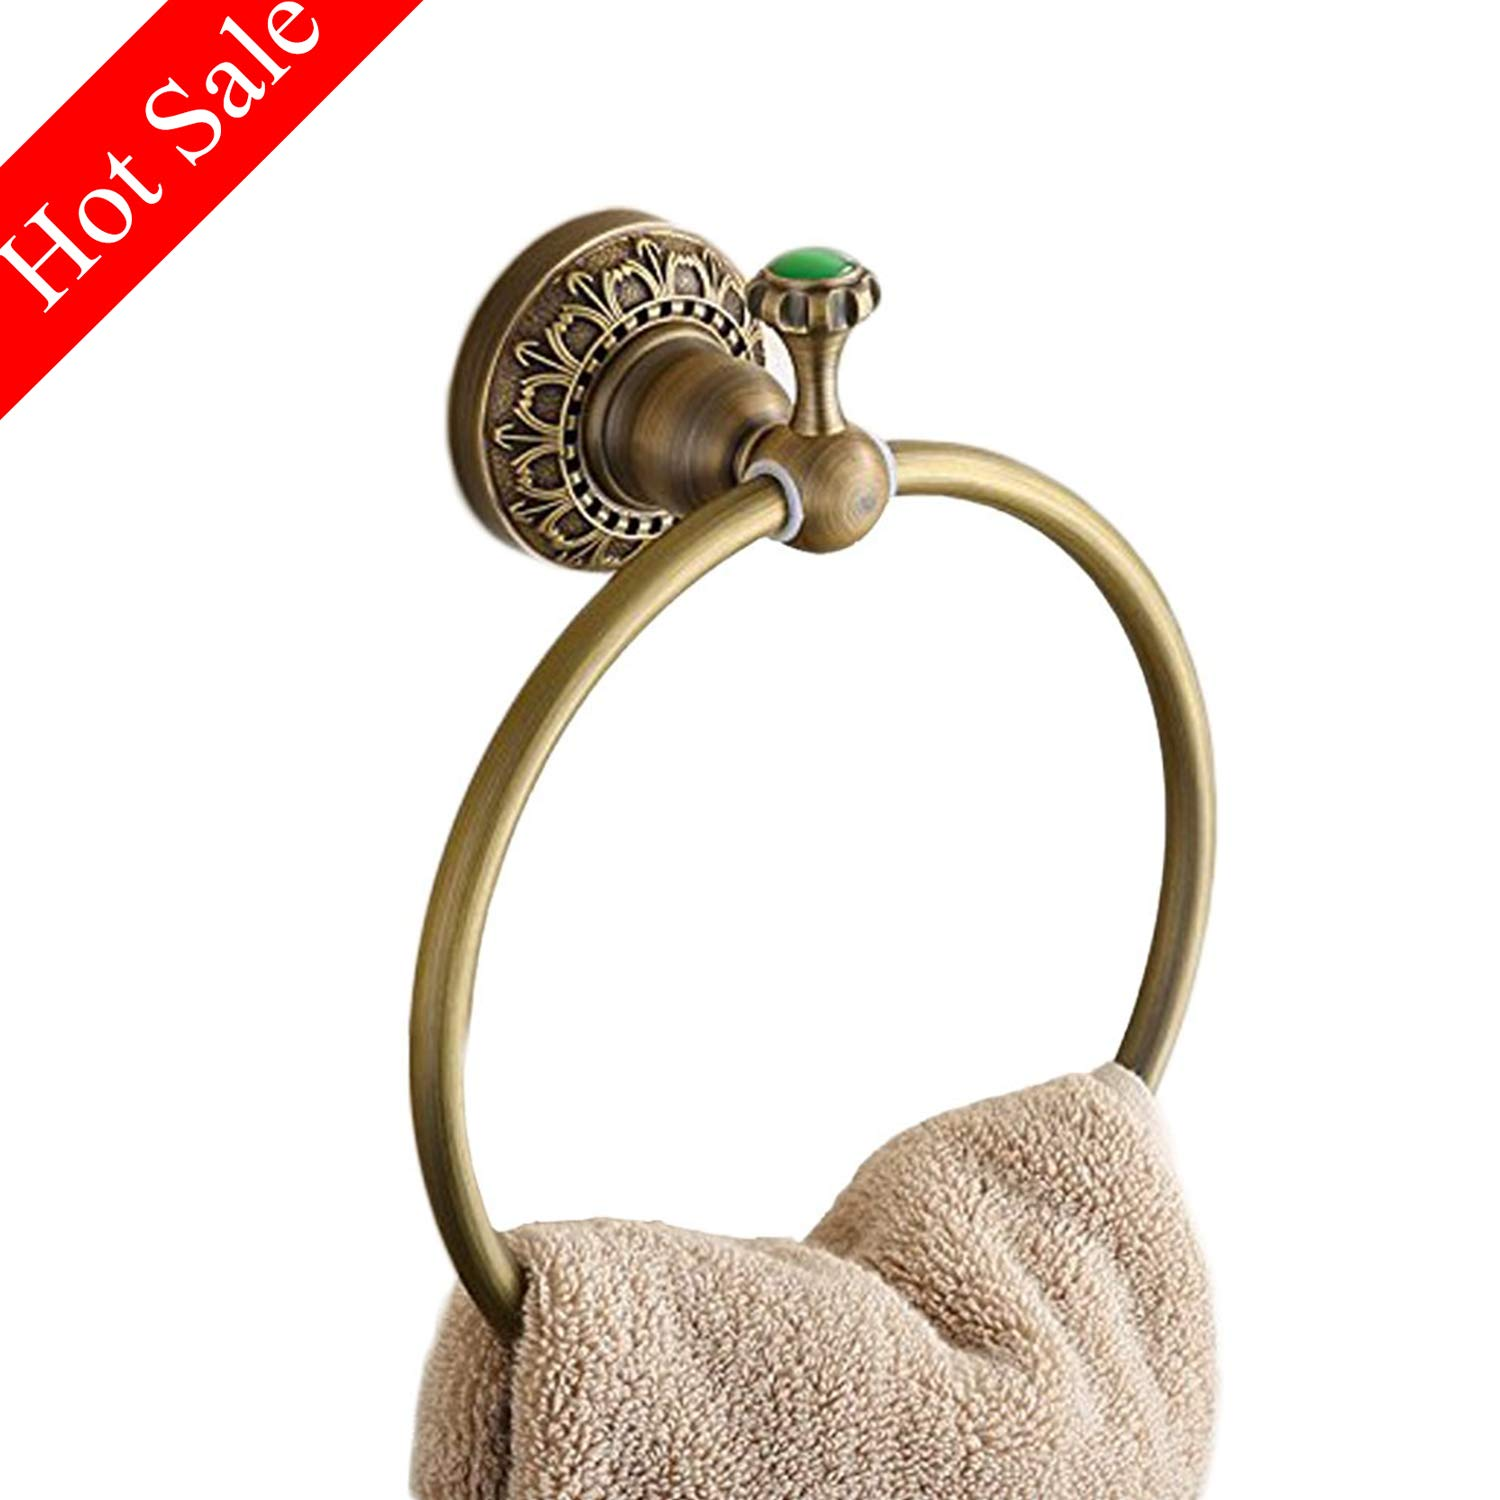 Beelee Wall Mounted Towel Ring/Towel Holder,Solid Brass Construction, Antique Bronze finish,Bathroom Accessories